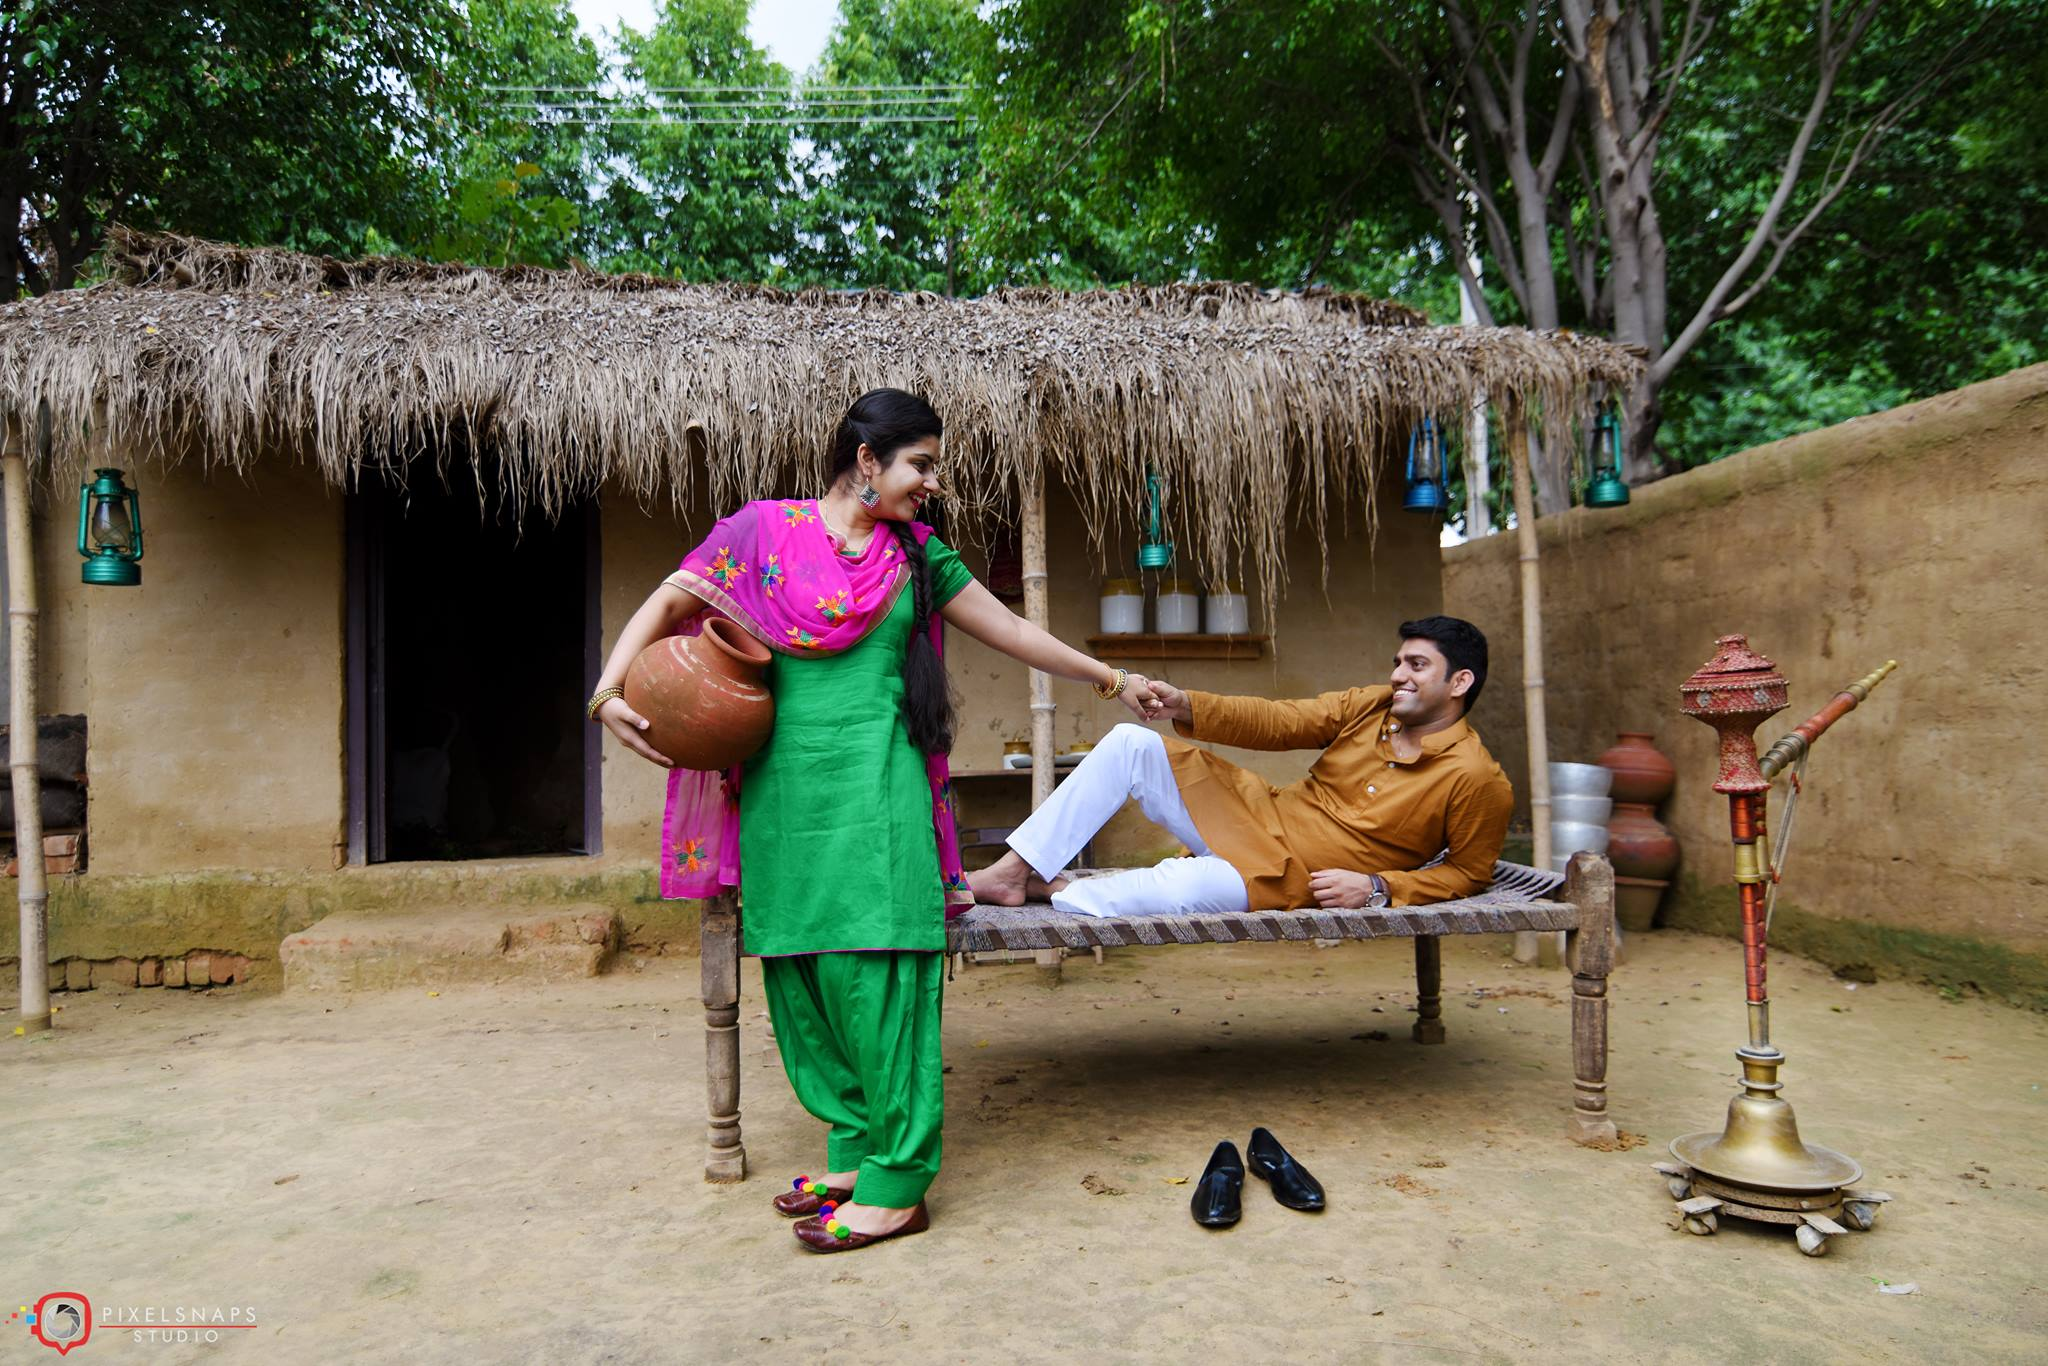 indian pre wedding photoshoot ideas outdoor